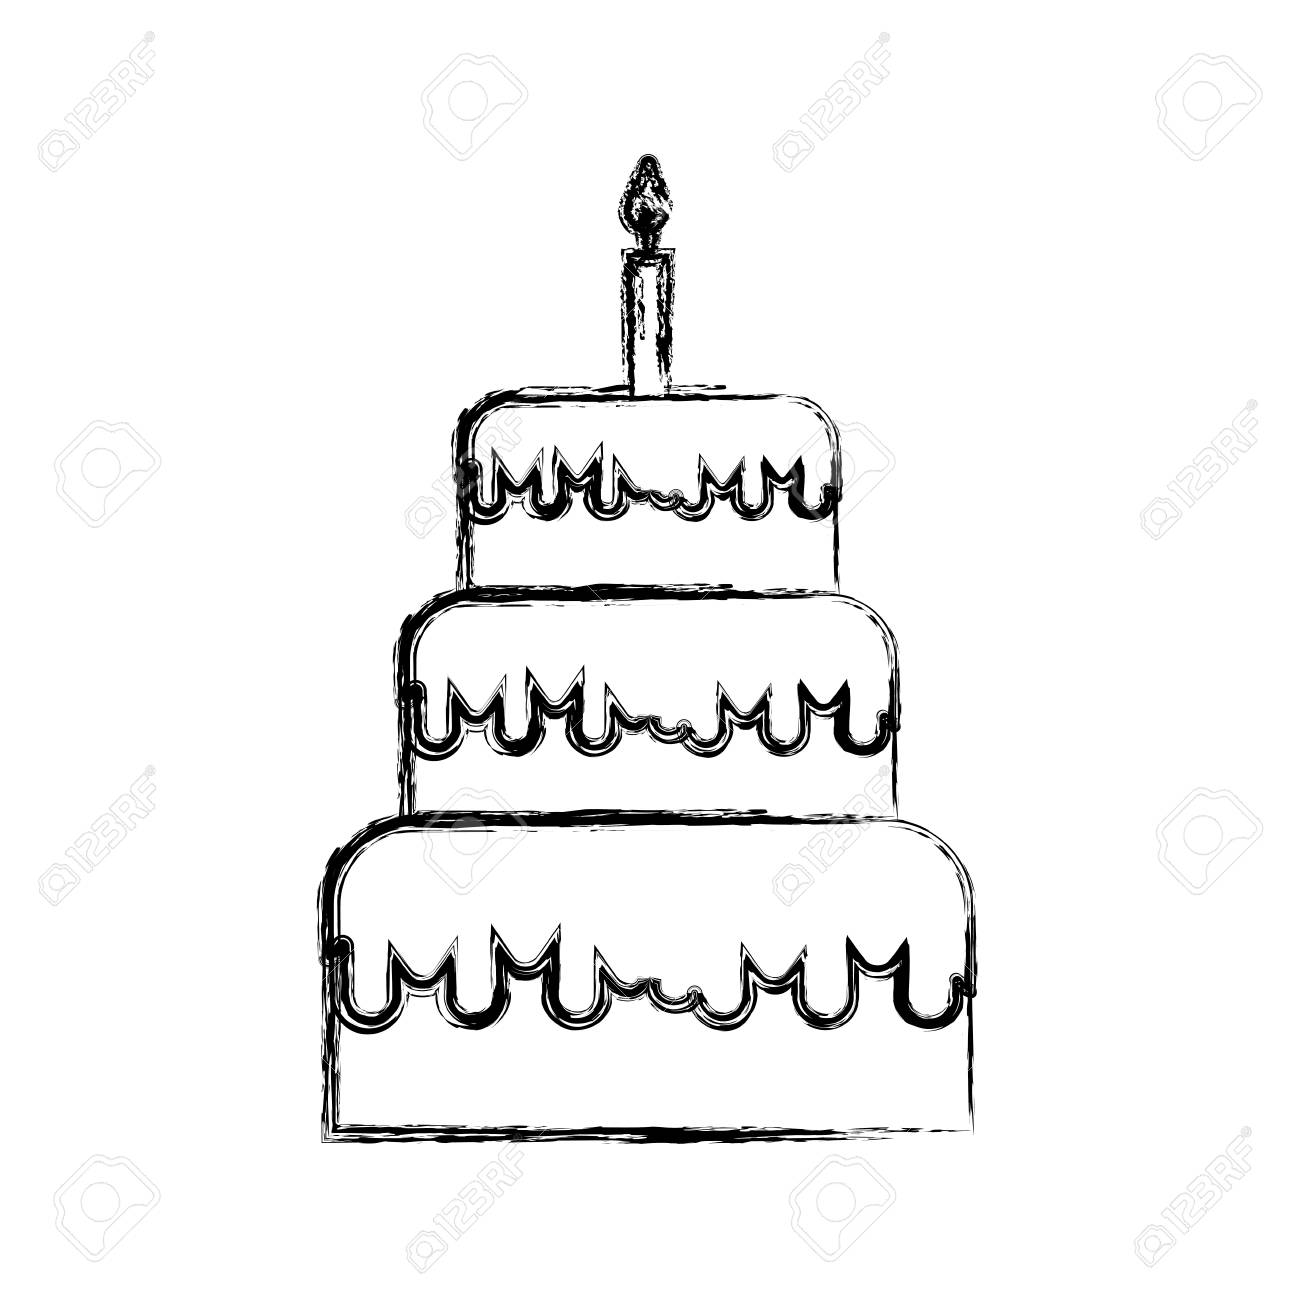 Brilliant Sketch Draw Birthday Cake Cartoon Vector Graphic Design Royalty Funny Birthday Cards Online Alyptdamsfinfo